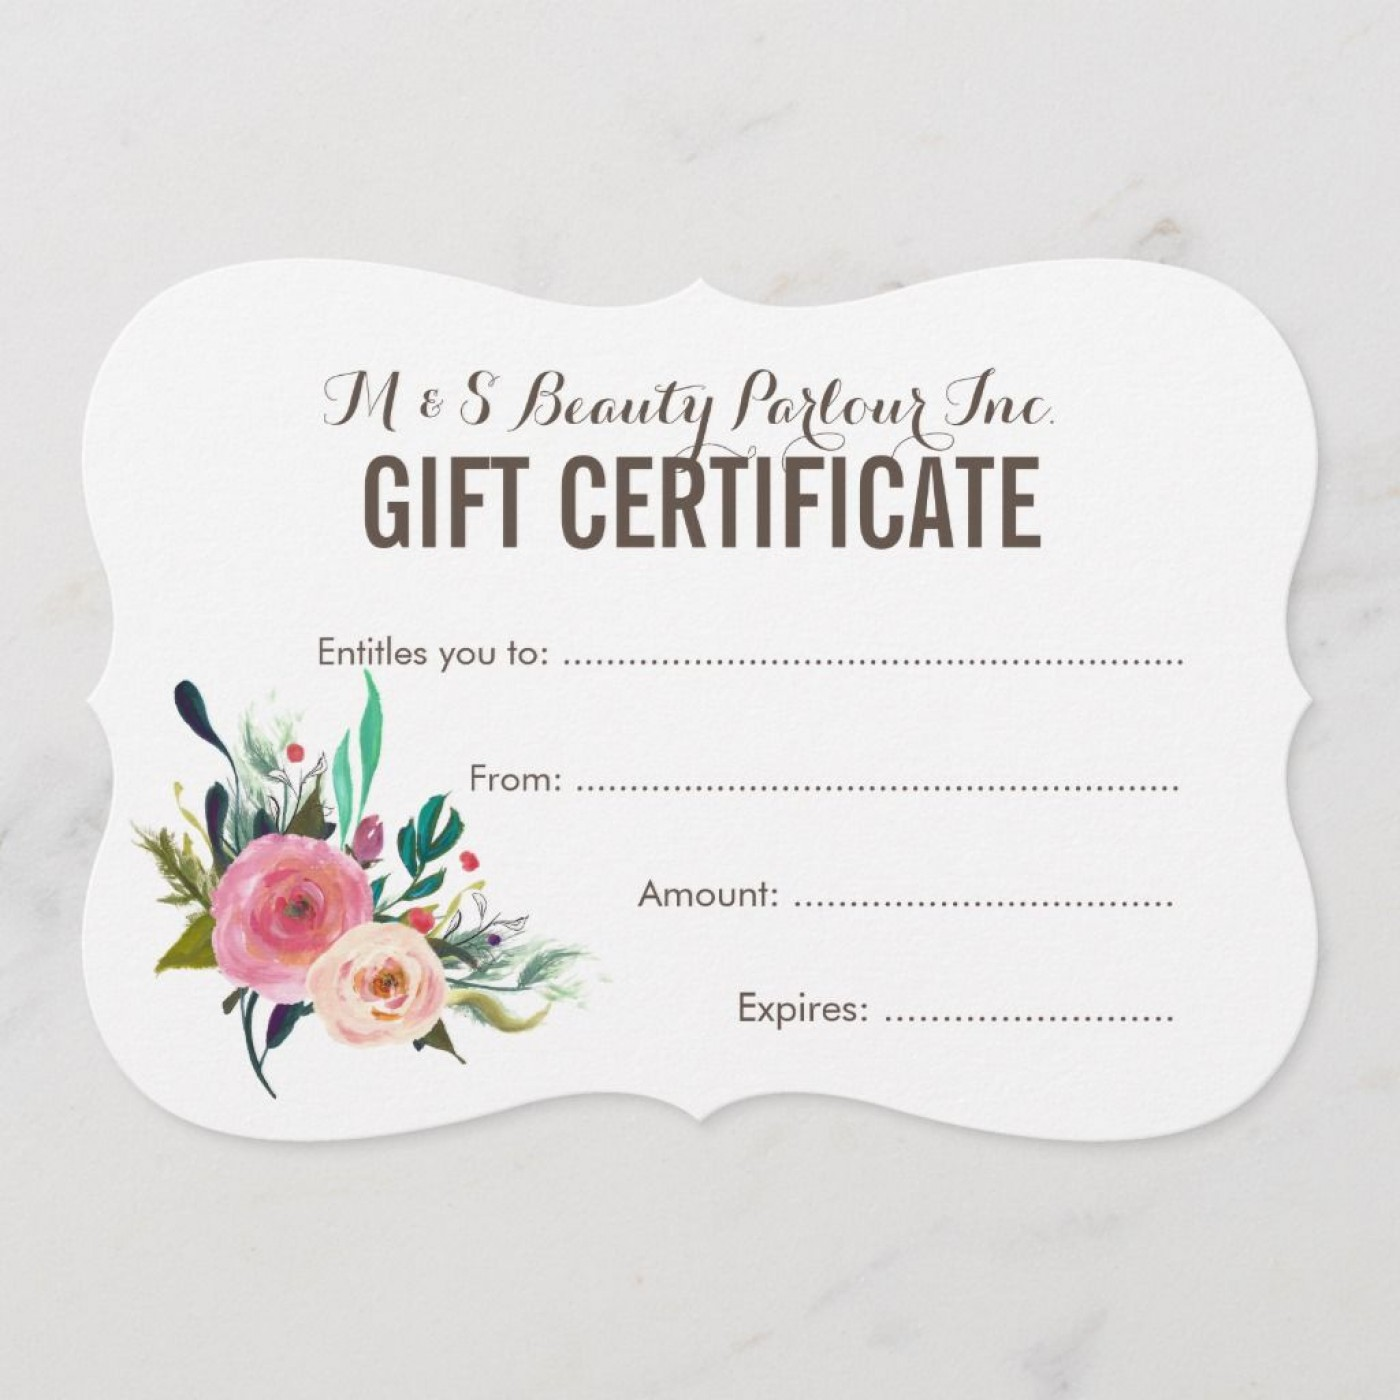 005 Best Salon Gift Certificate Template Photo 1400